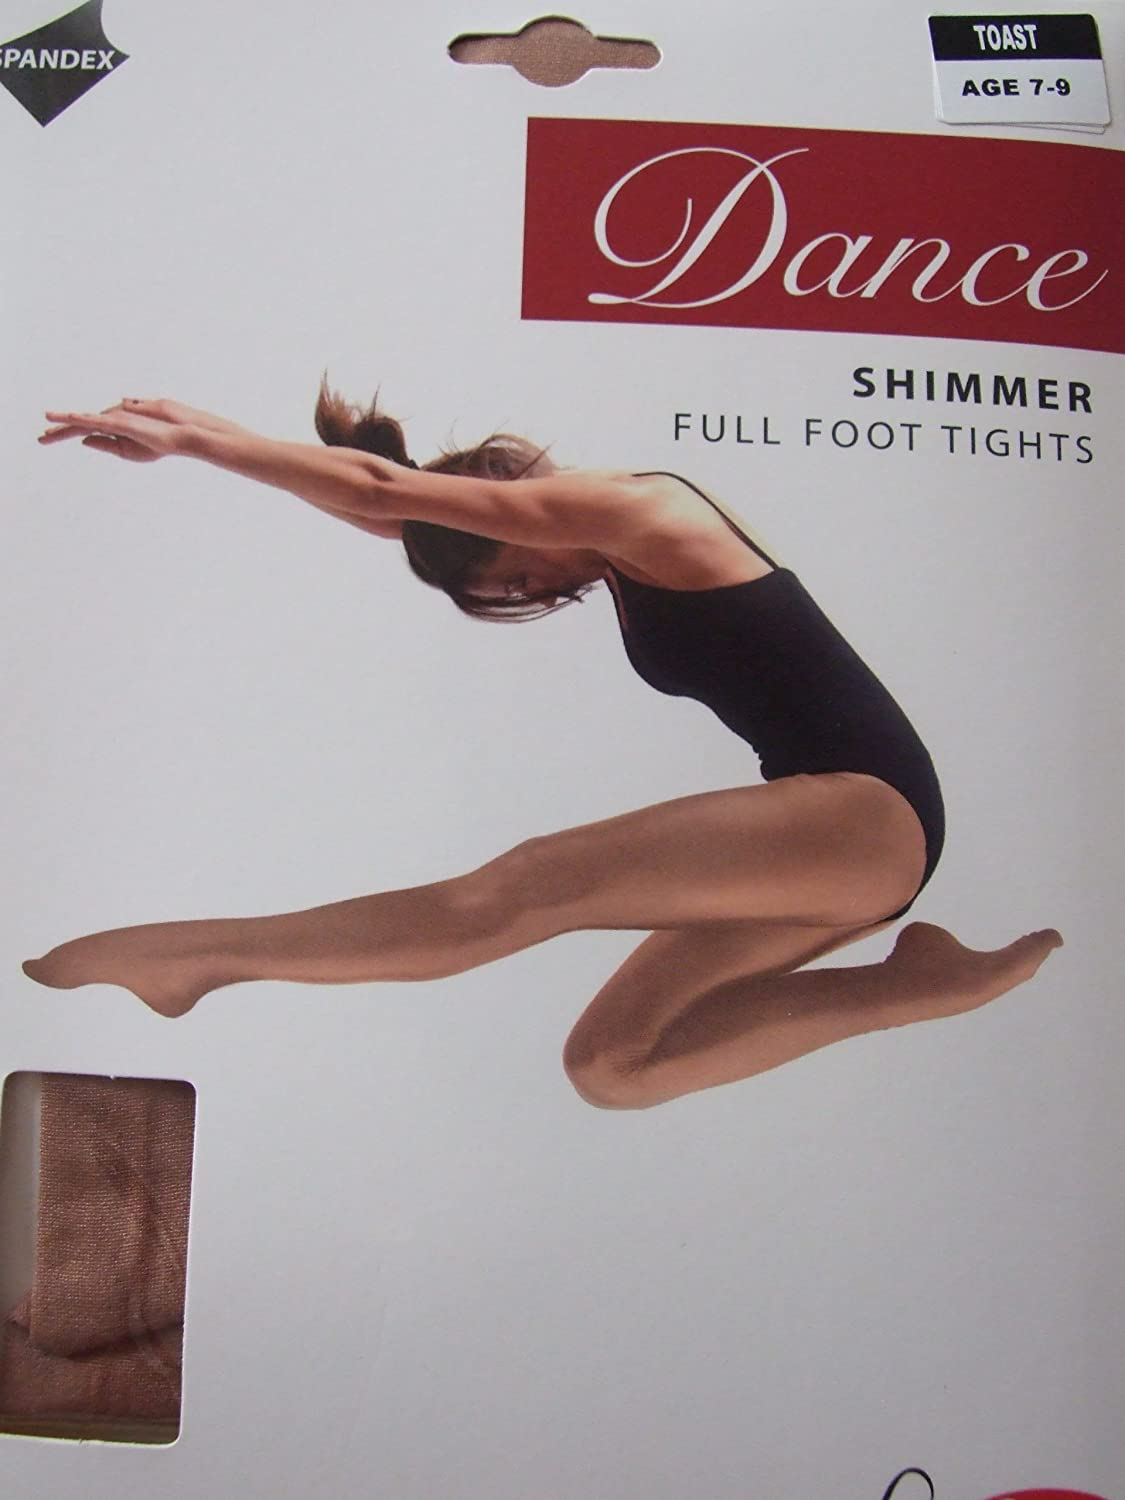 Light Toast 7-9 Years Girls 1 Pair Silky Dance Shimmer Full Foot Tights In 2 Colours